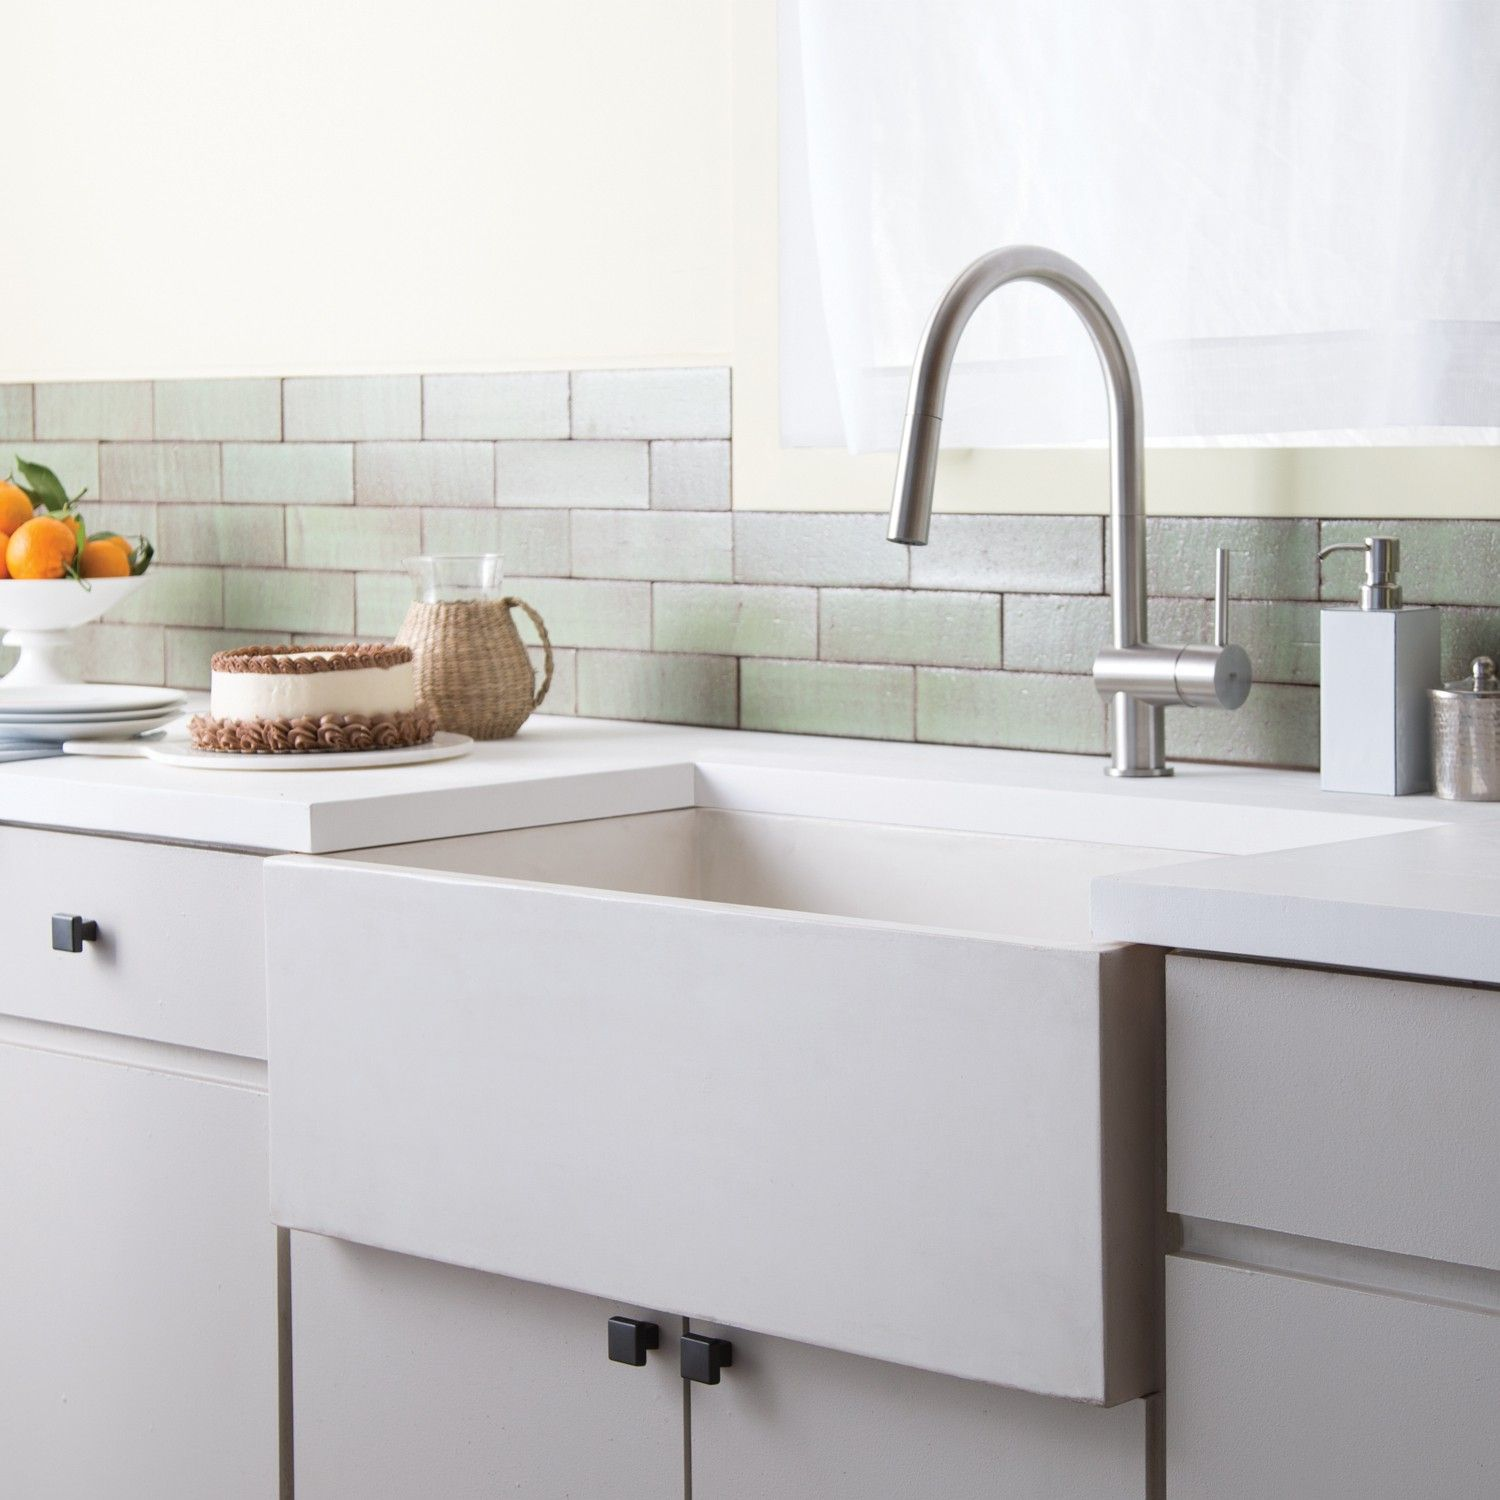 Lovely Farmhouse Sink In Modern Kitchen The Most Elegant As Well As Attractive Farmhouse Sink In Modern Kitchen Intended For Really Encourage The House Curre